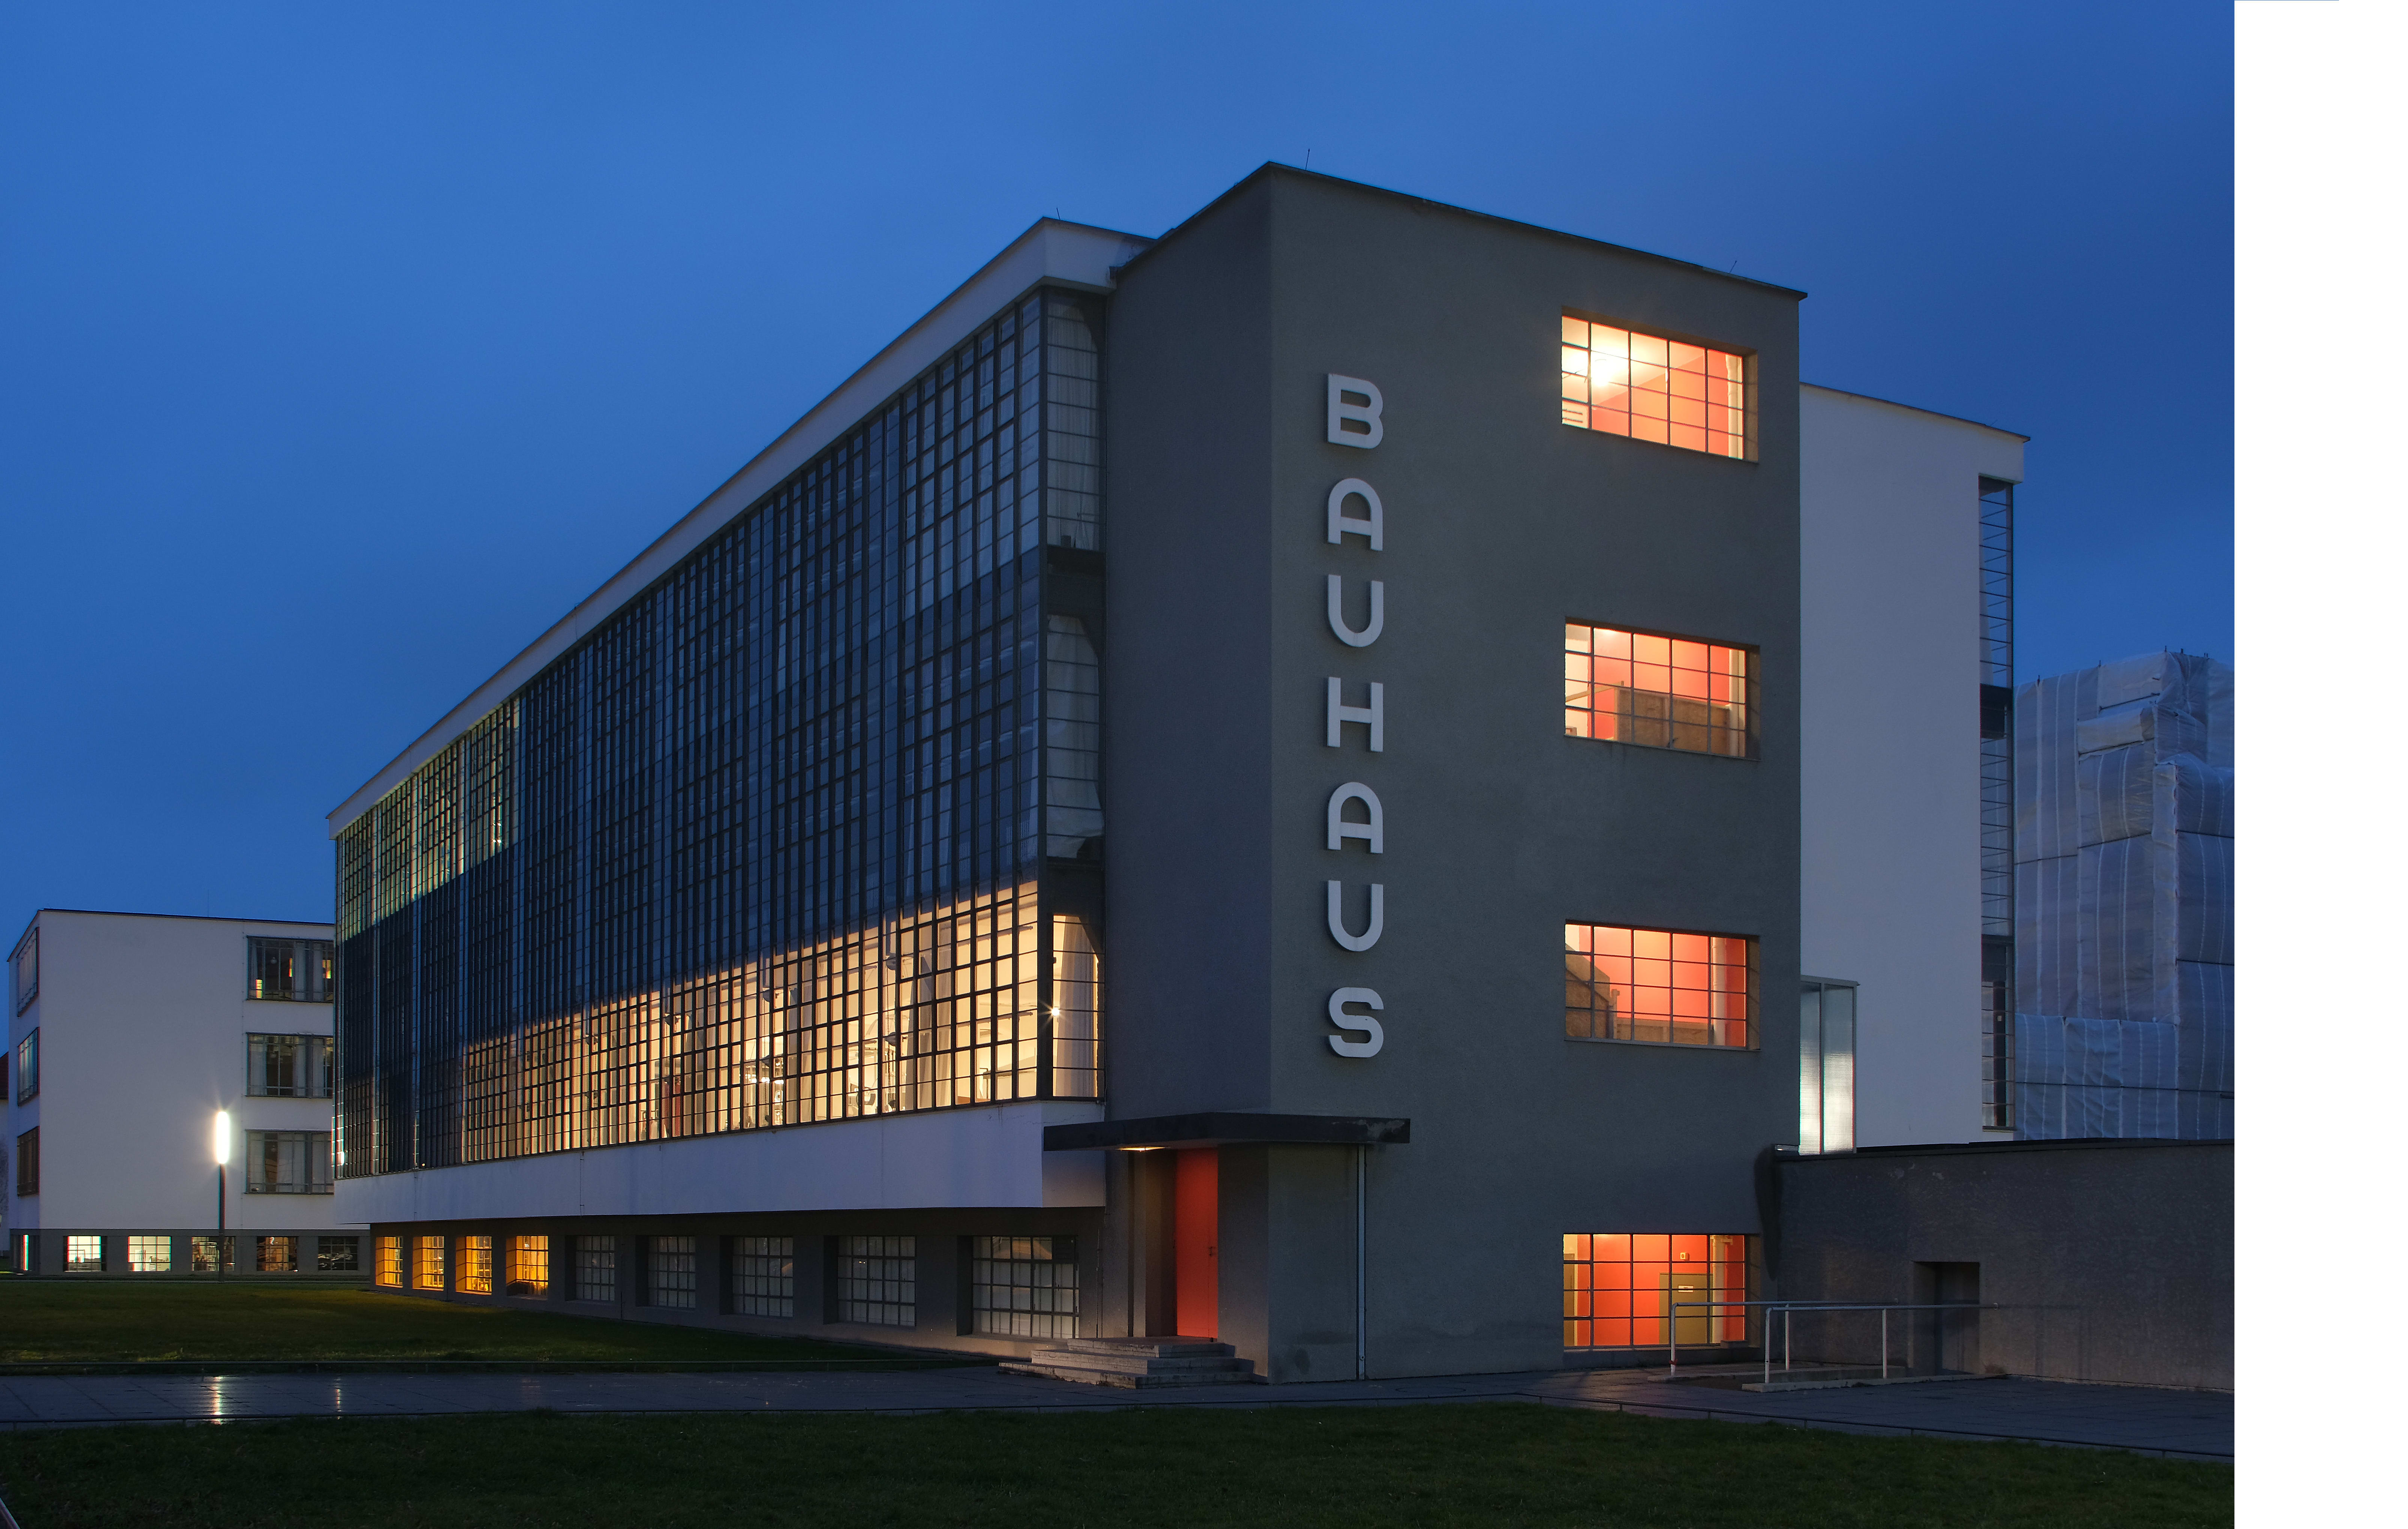 Exterior of the Bauhaus Museum in Dessau, Germany. © Getty Images / Sean Gallup / Staff